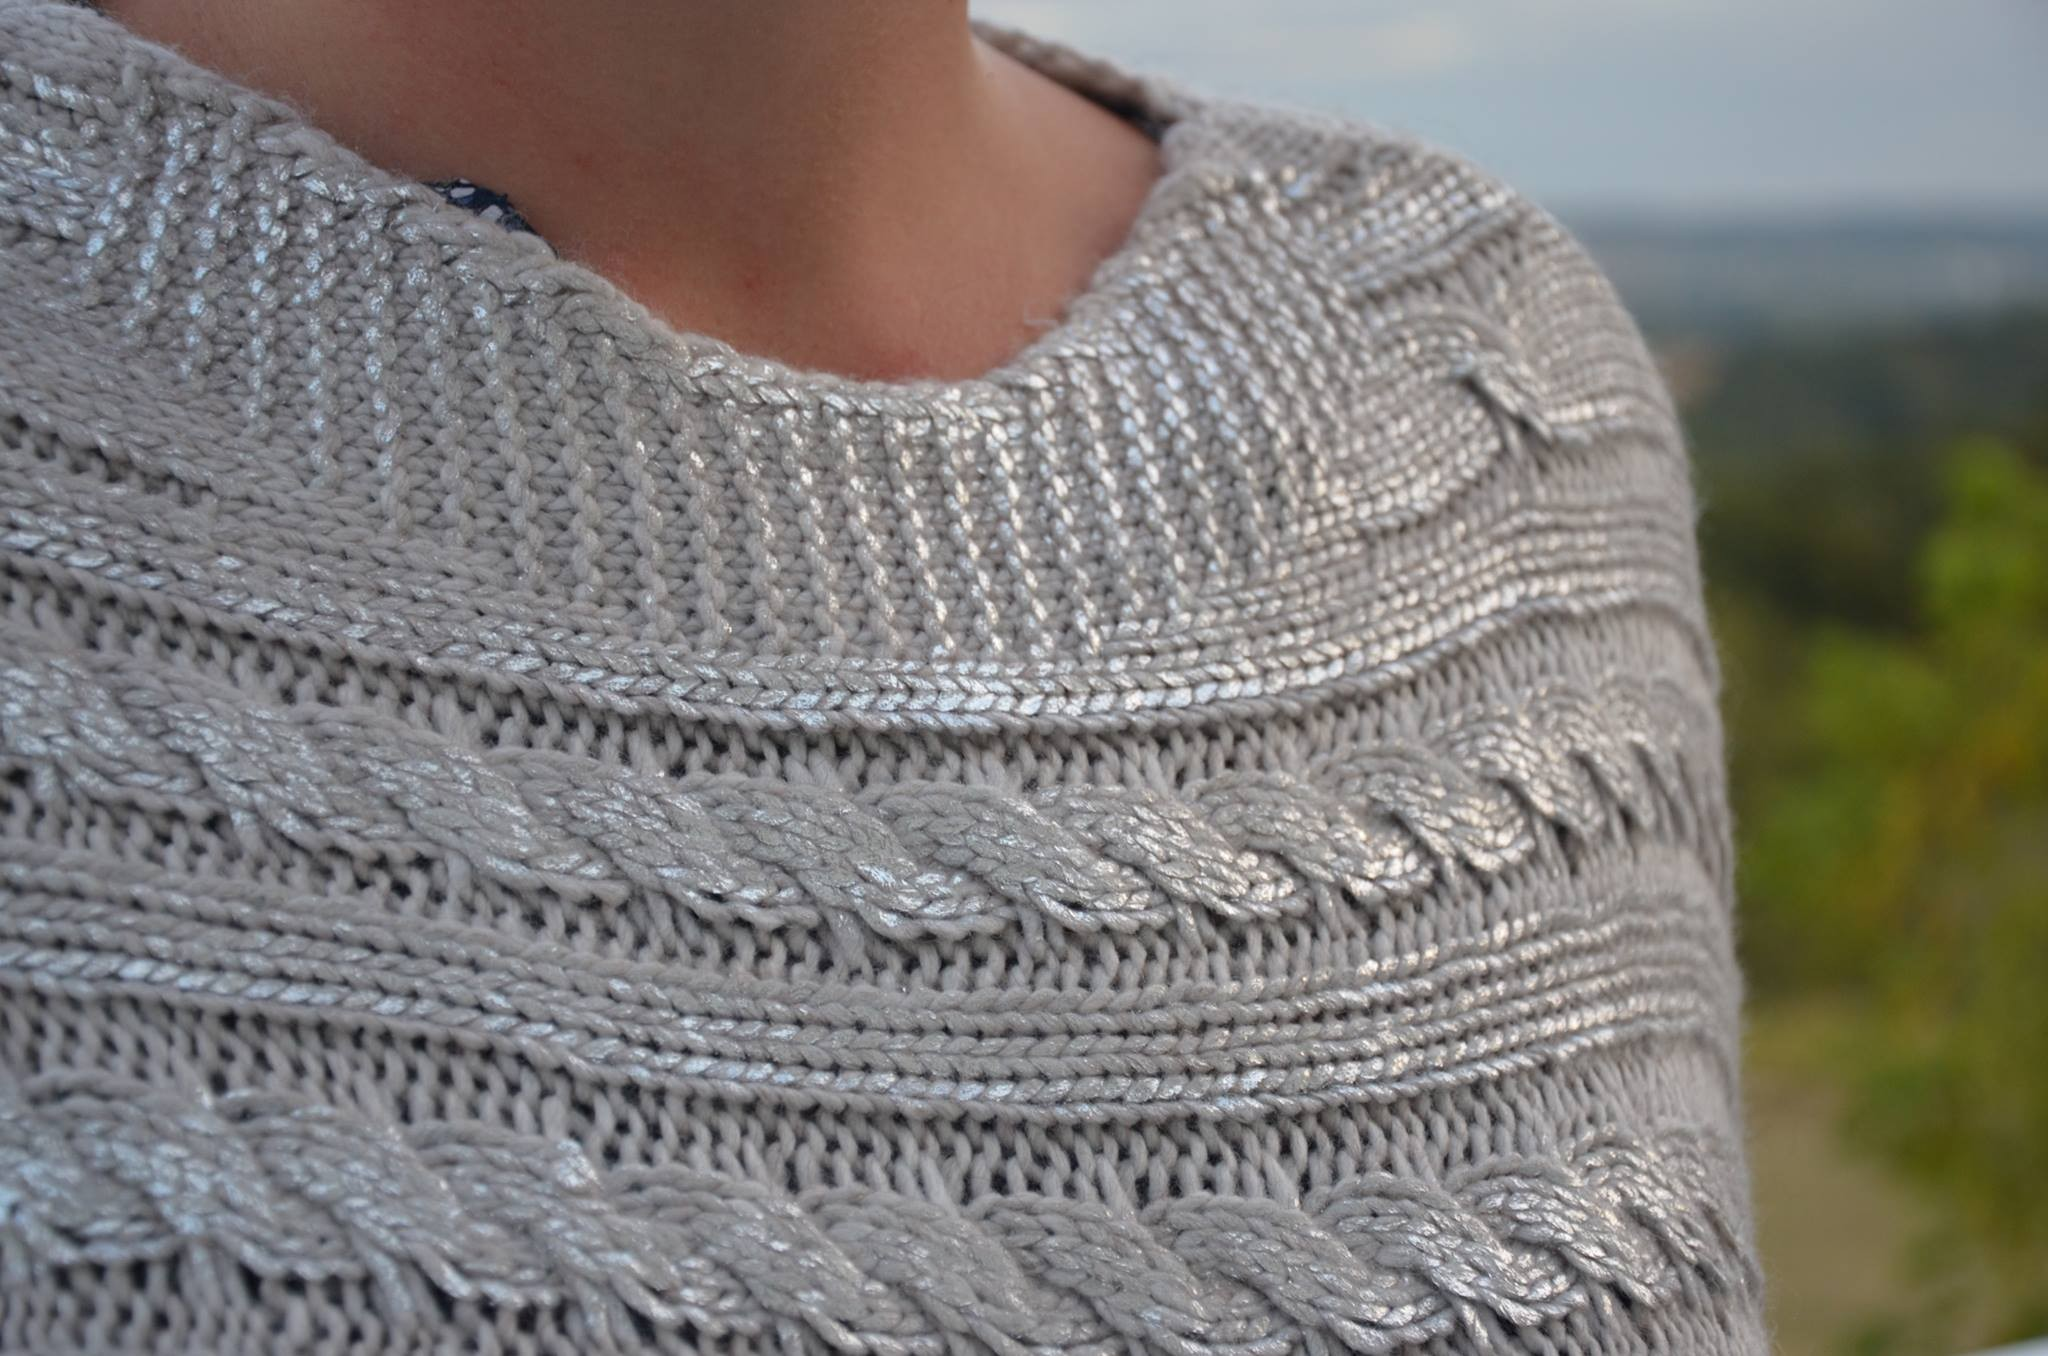 Poncho pull cape laine mohair grosse maille hiver beige argent clementina bei ebay - Laine grosse maille ...